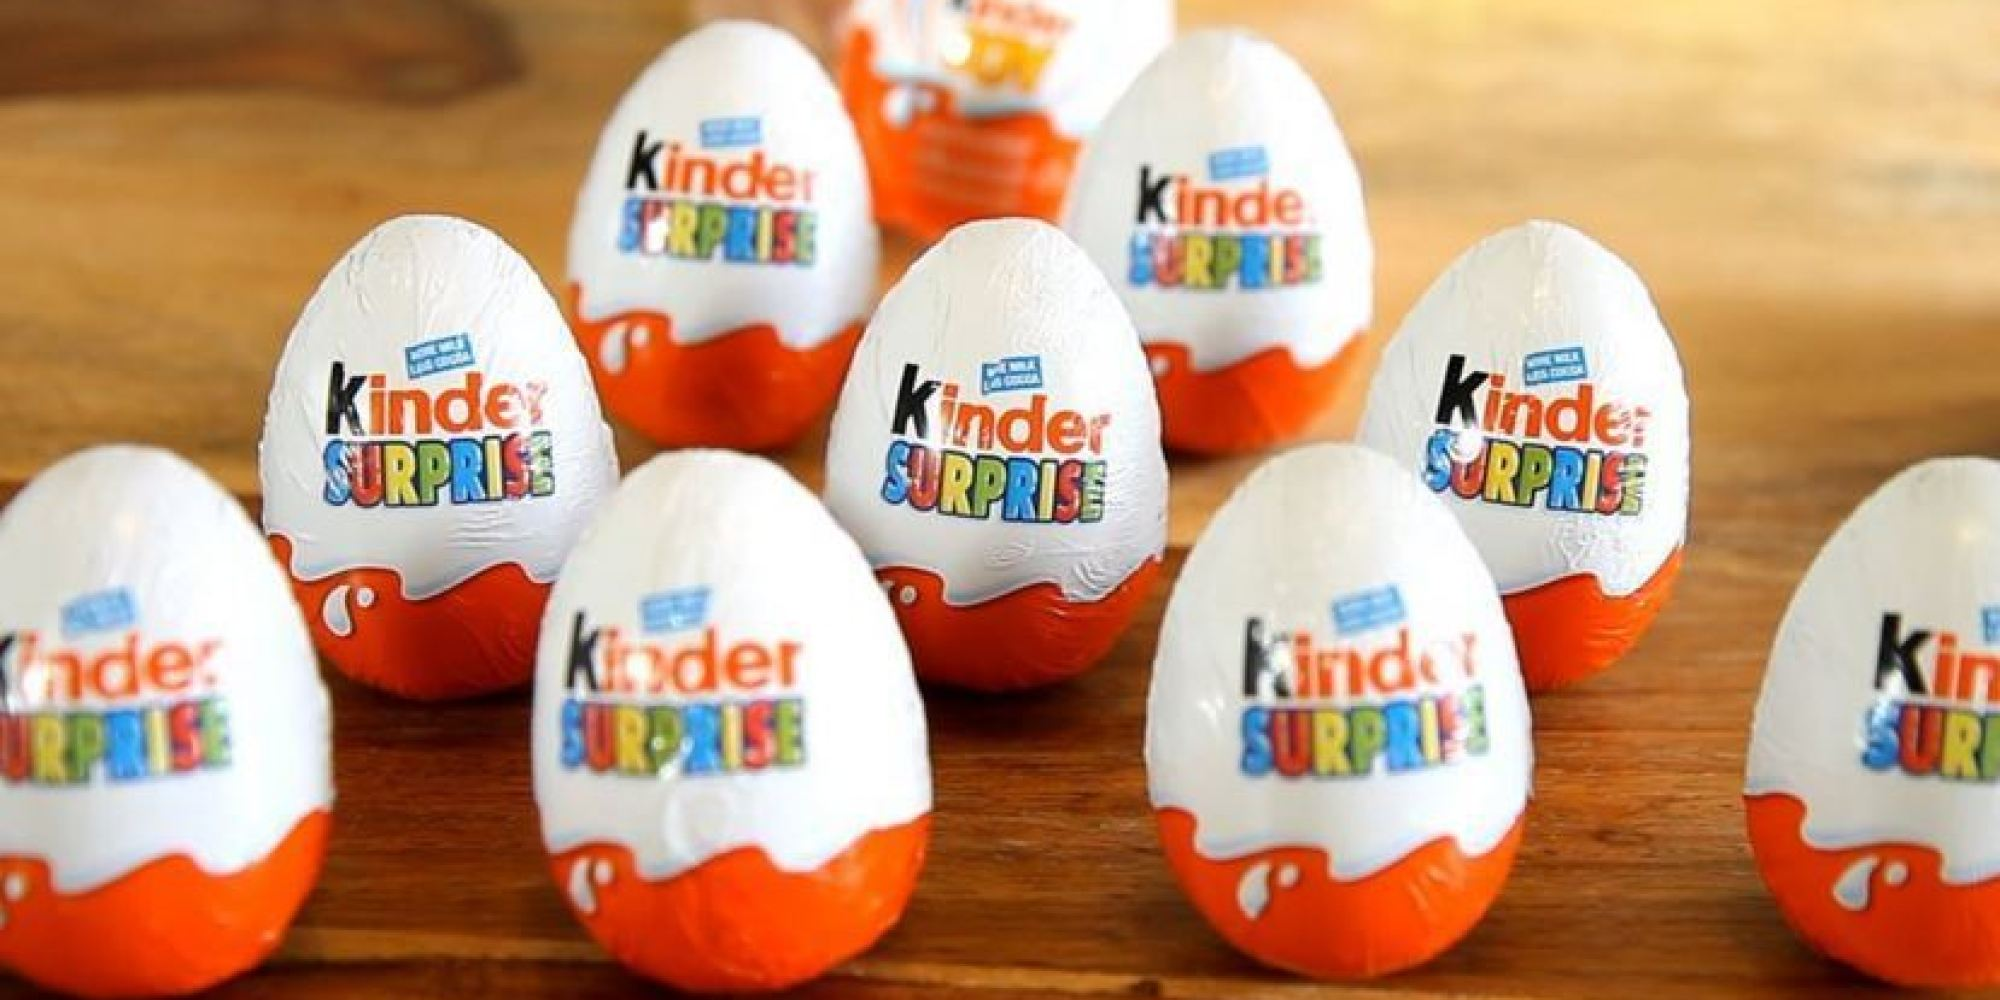 Kinder Egg Illegal At Long Last Kinder Eggs Are Officially Coming To The